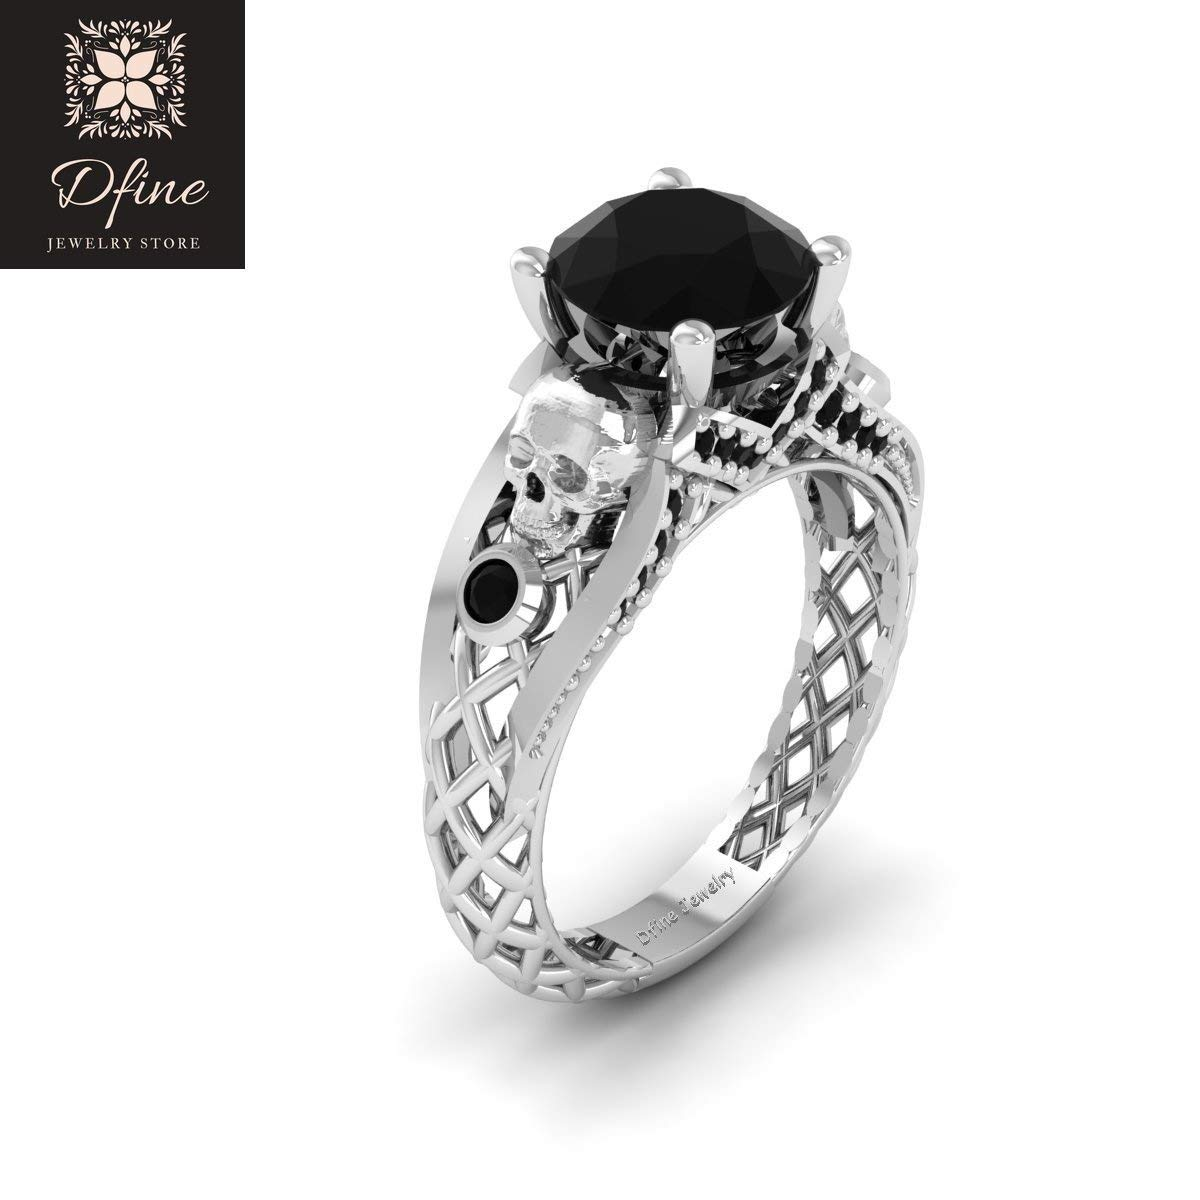 Gothic Wedding Rings.Amazon Com Solid 14k White Gold Black Diamond Gothic Engagement